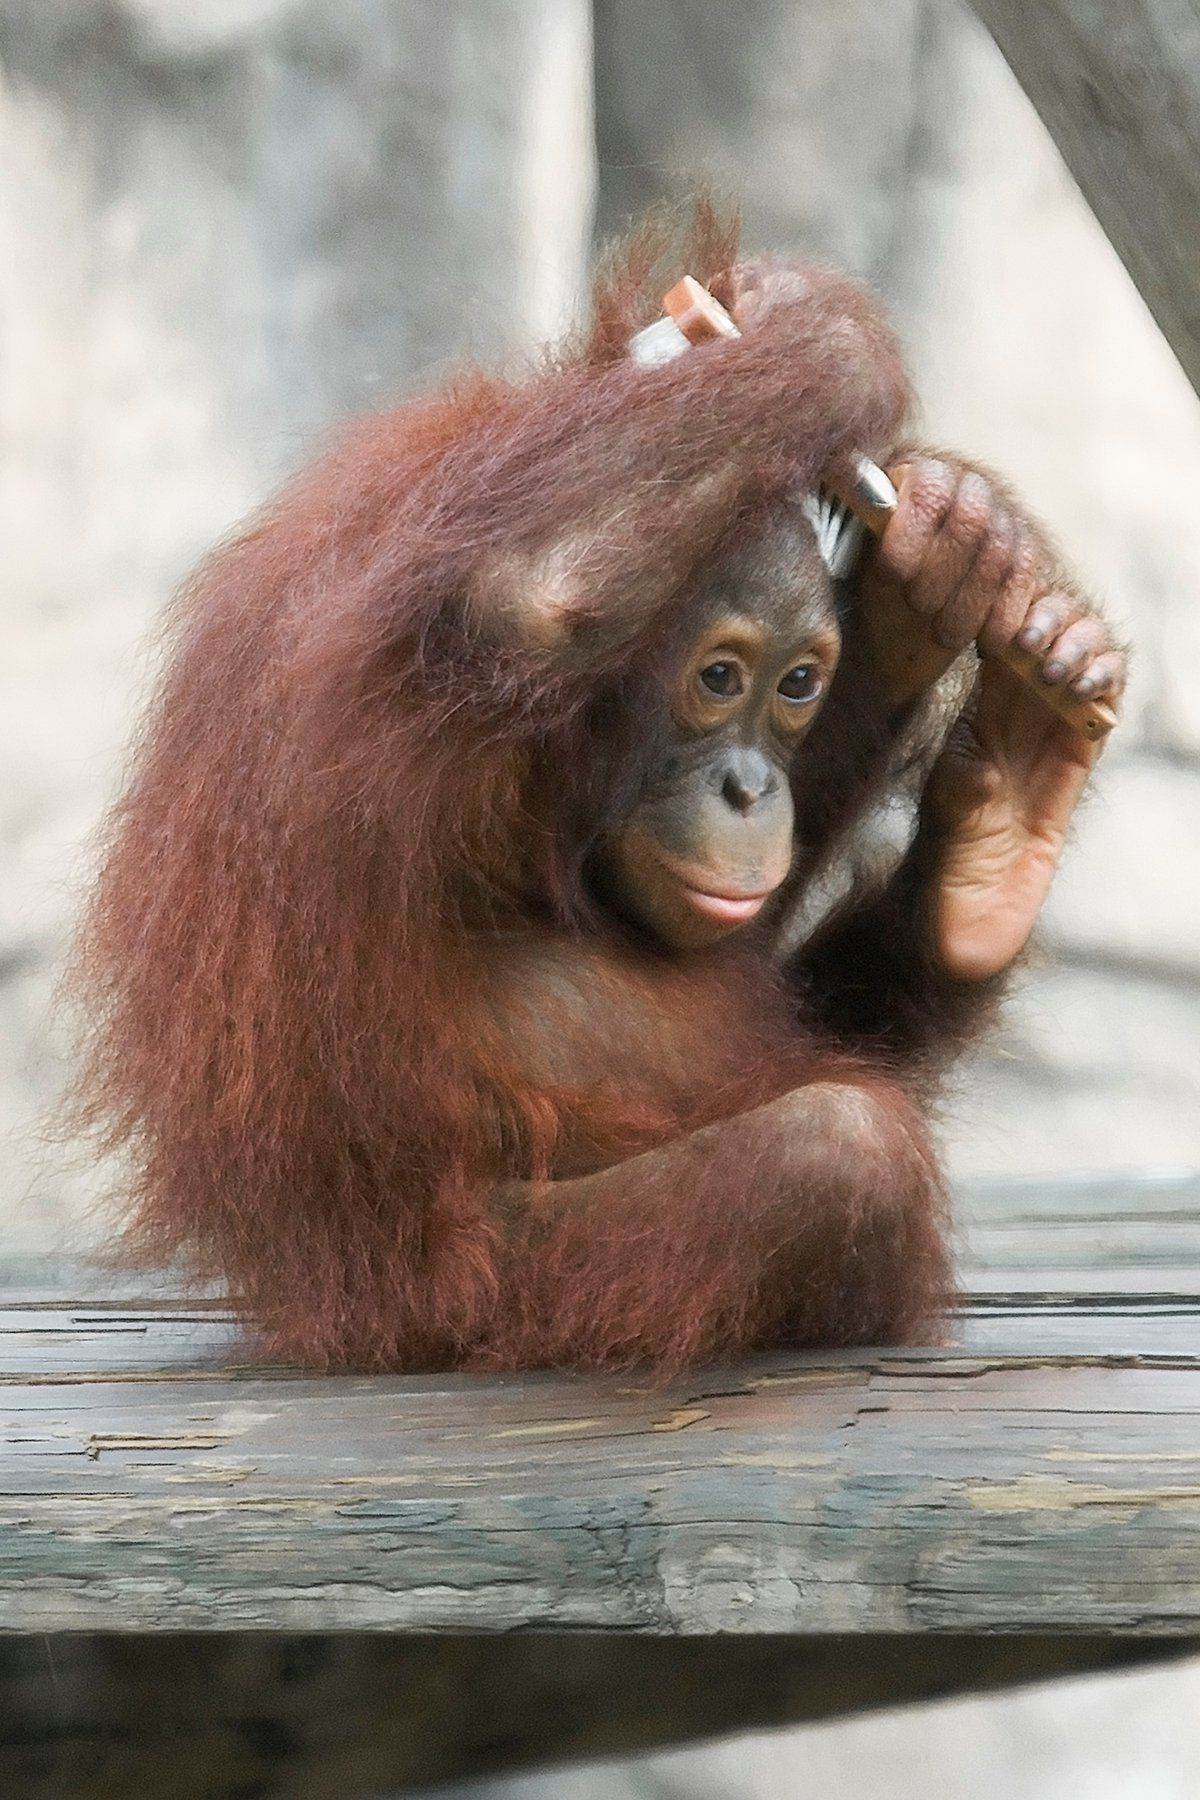 Orangutan brushing her hair. Fast learners with many human